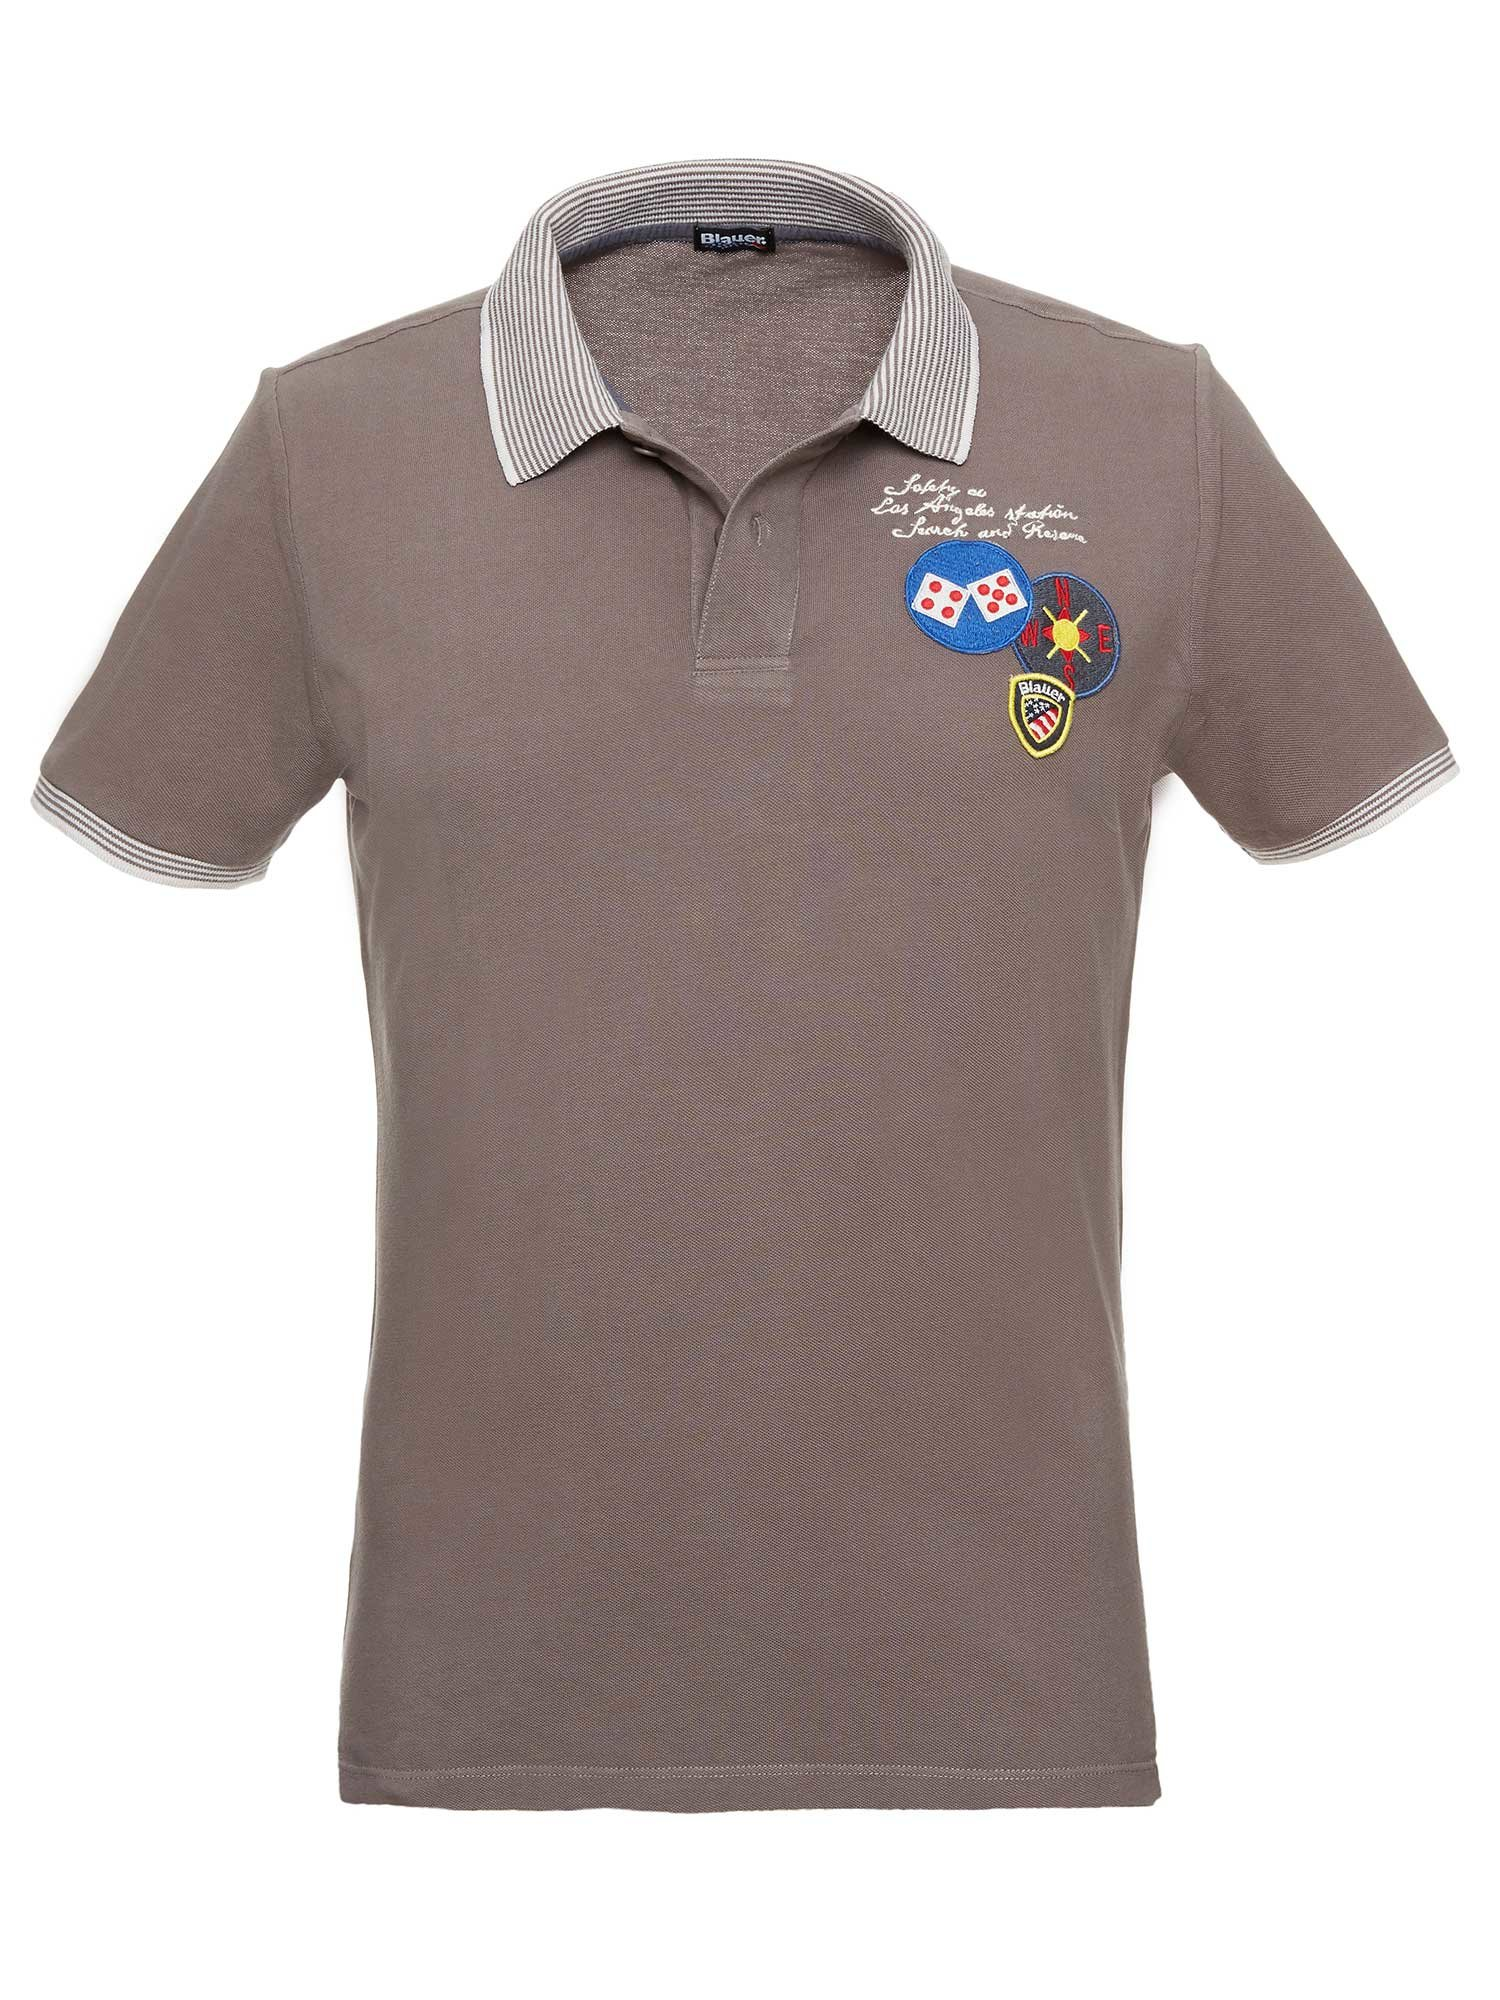 LOS ANGELES SAFETY POLO - Blauer